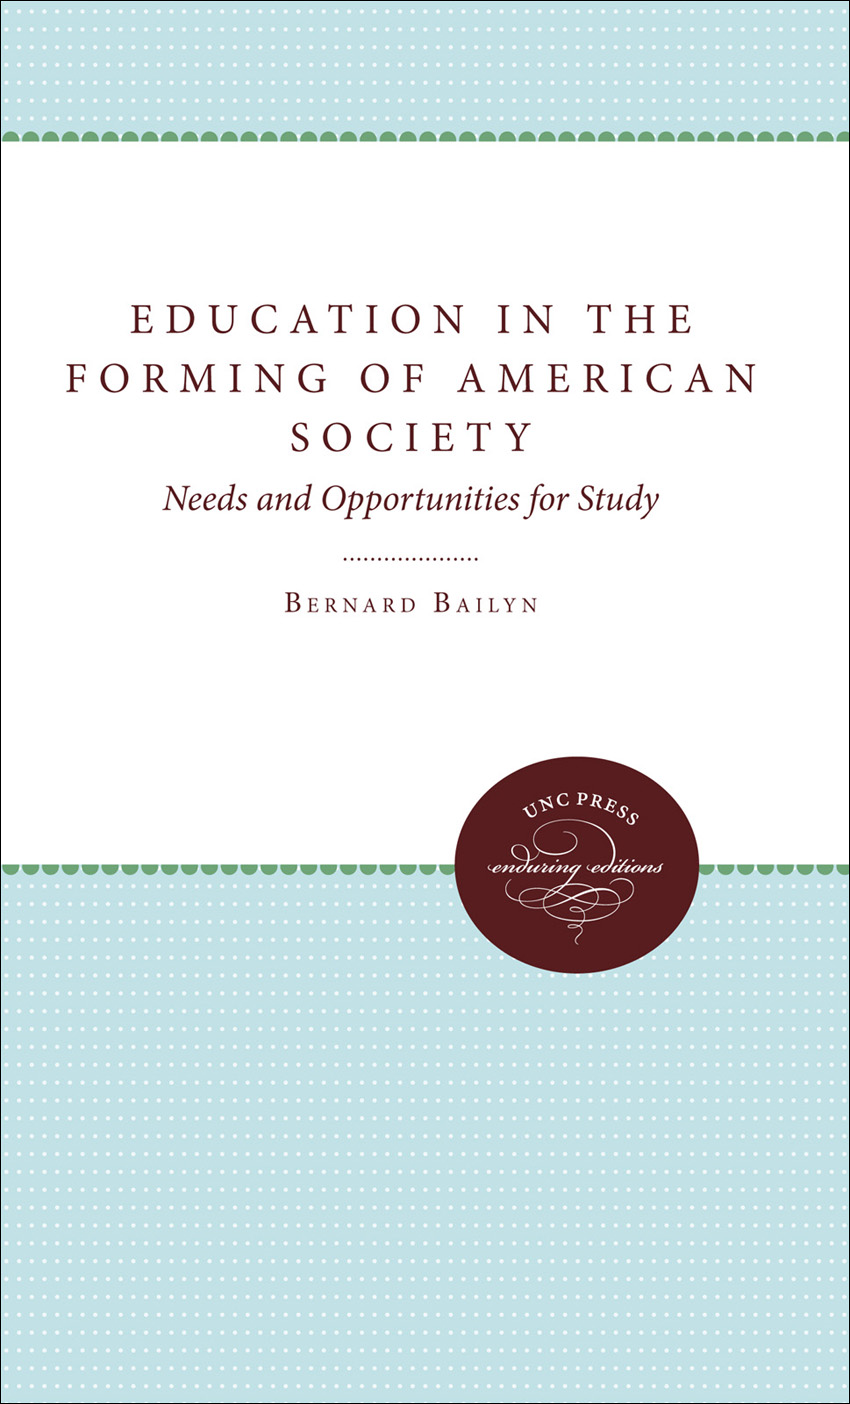 Education in the Forming of American Society By: Bernard Bailyn